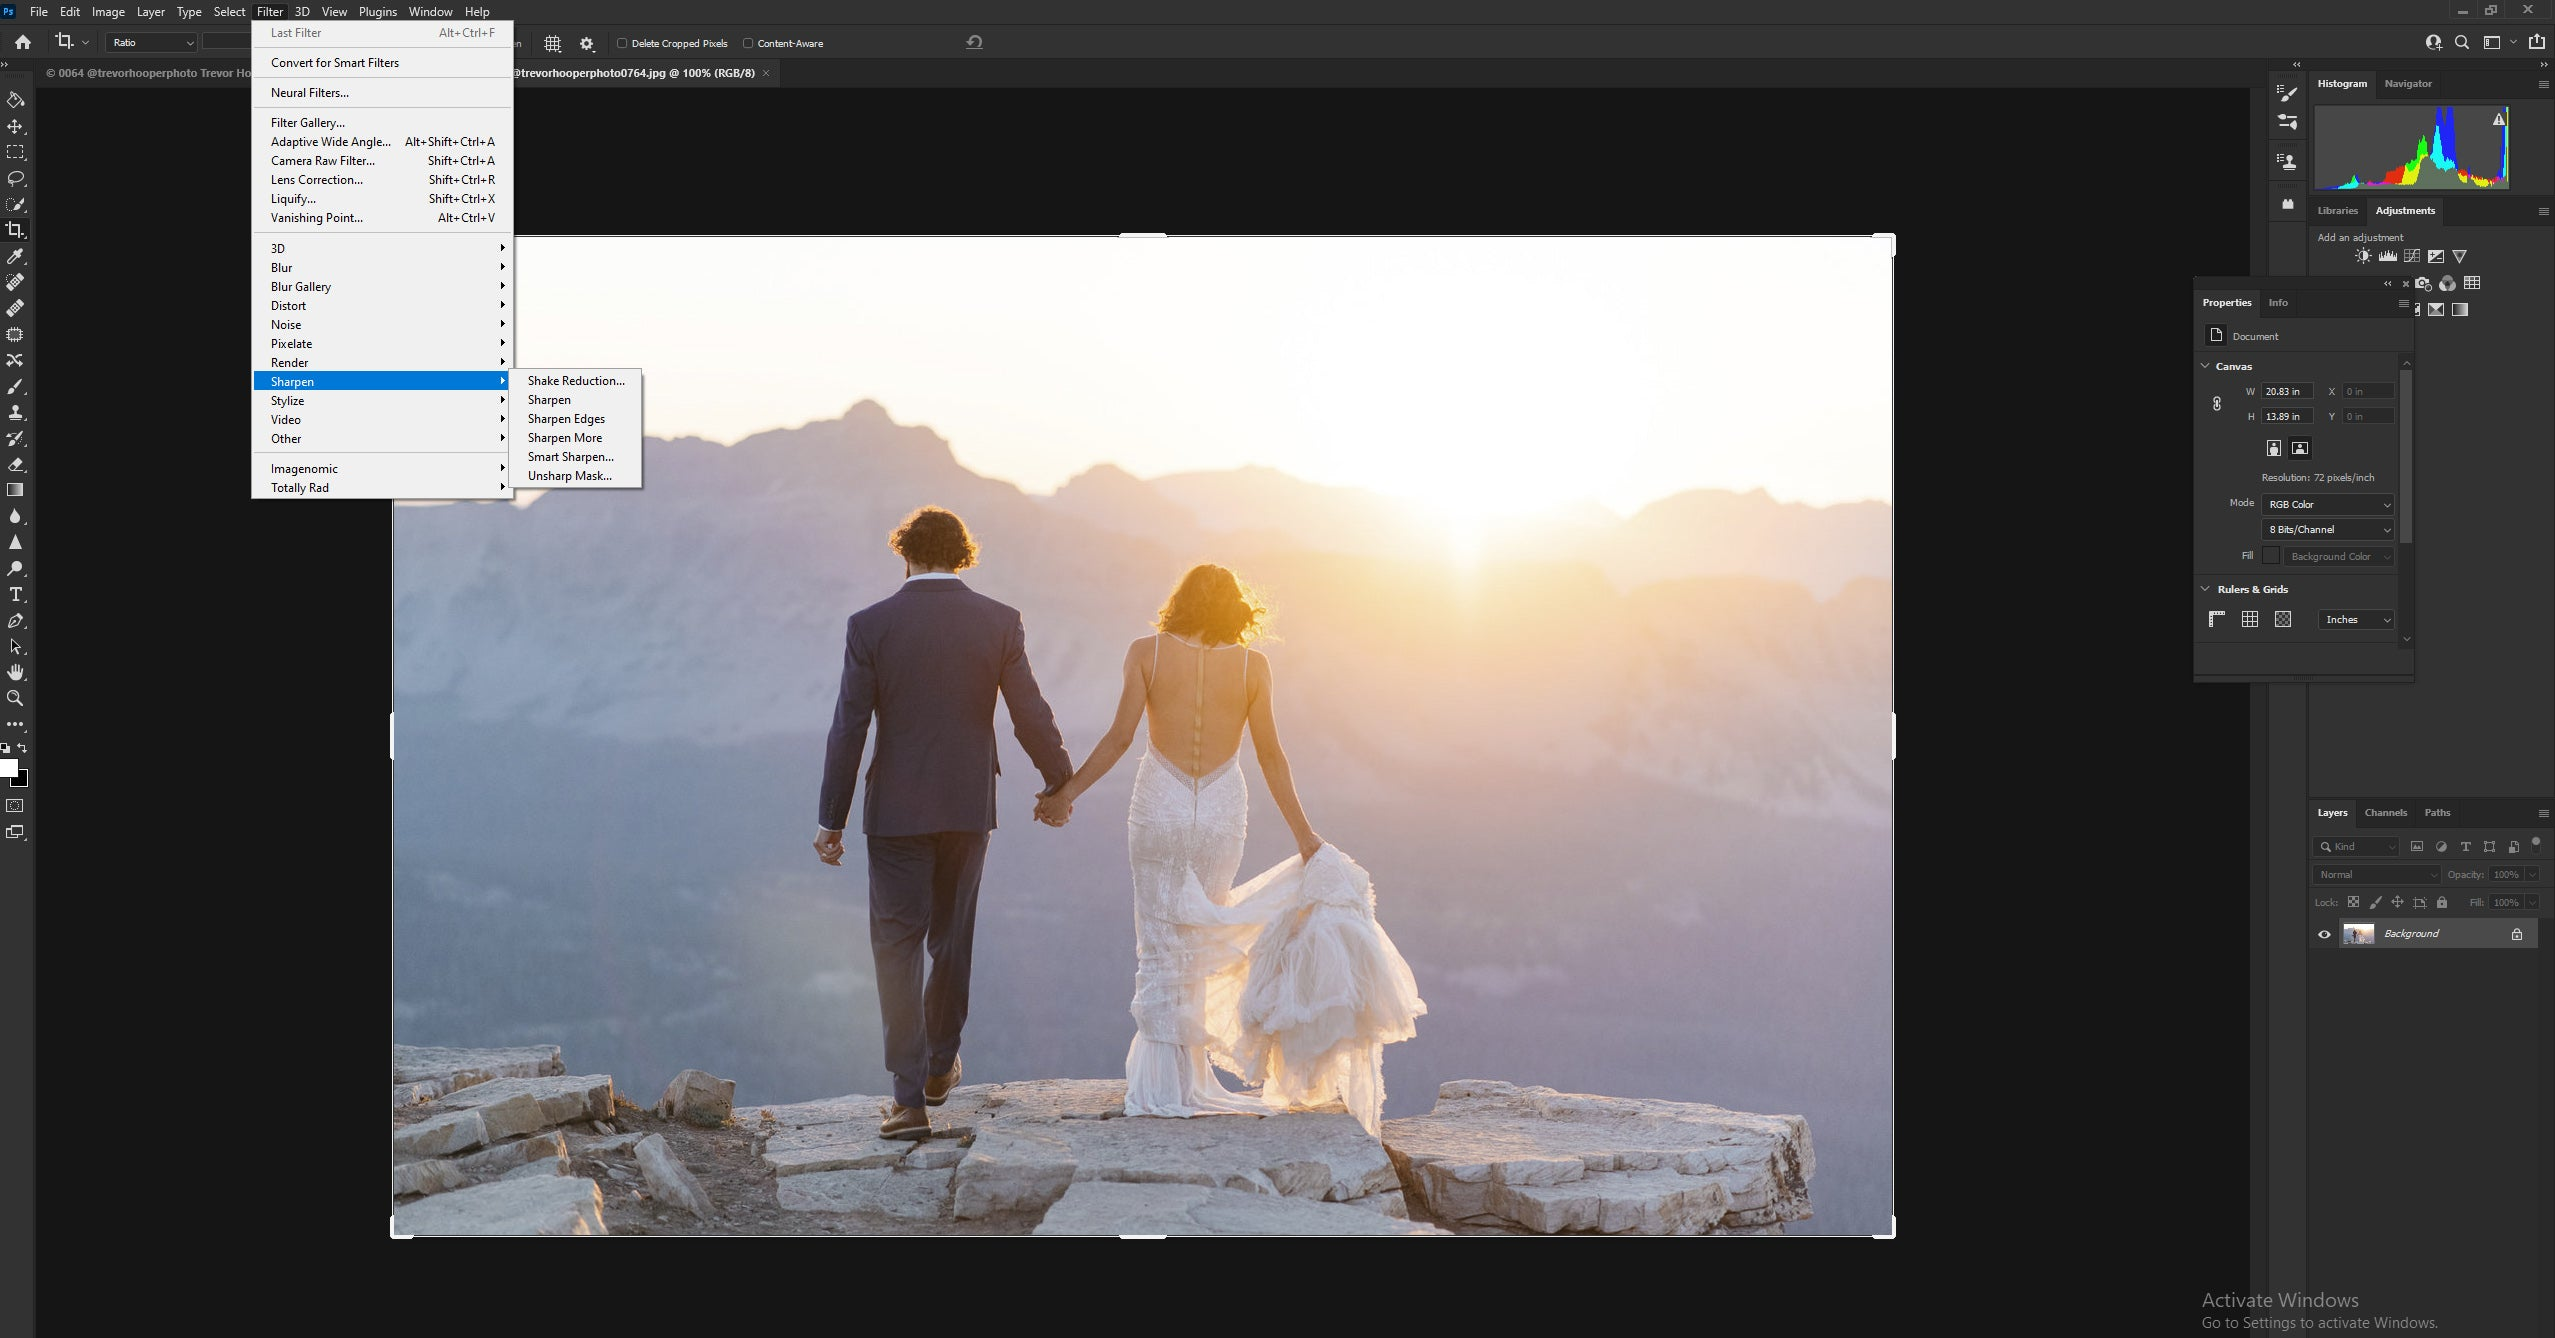 Using the sharpening tools in Photoshop to eliminate any noise